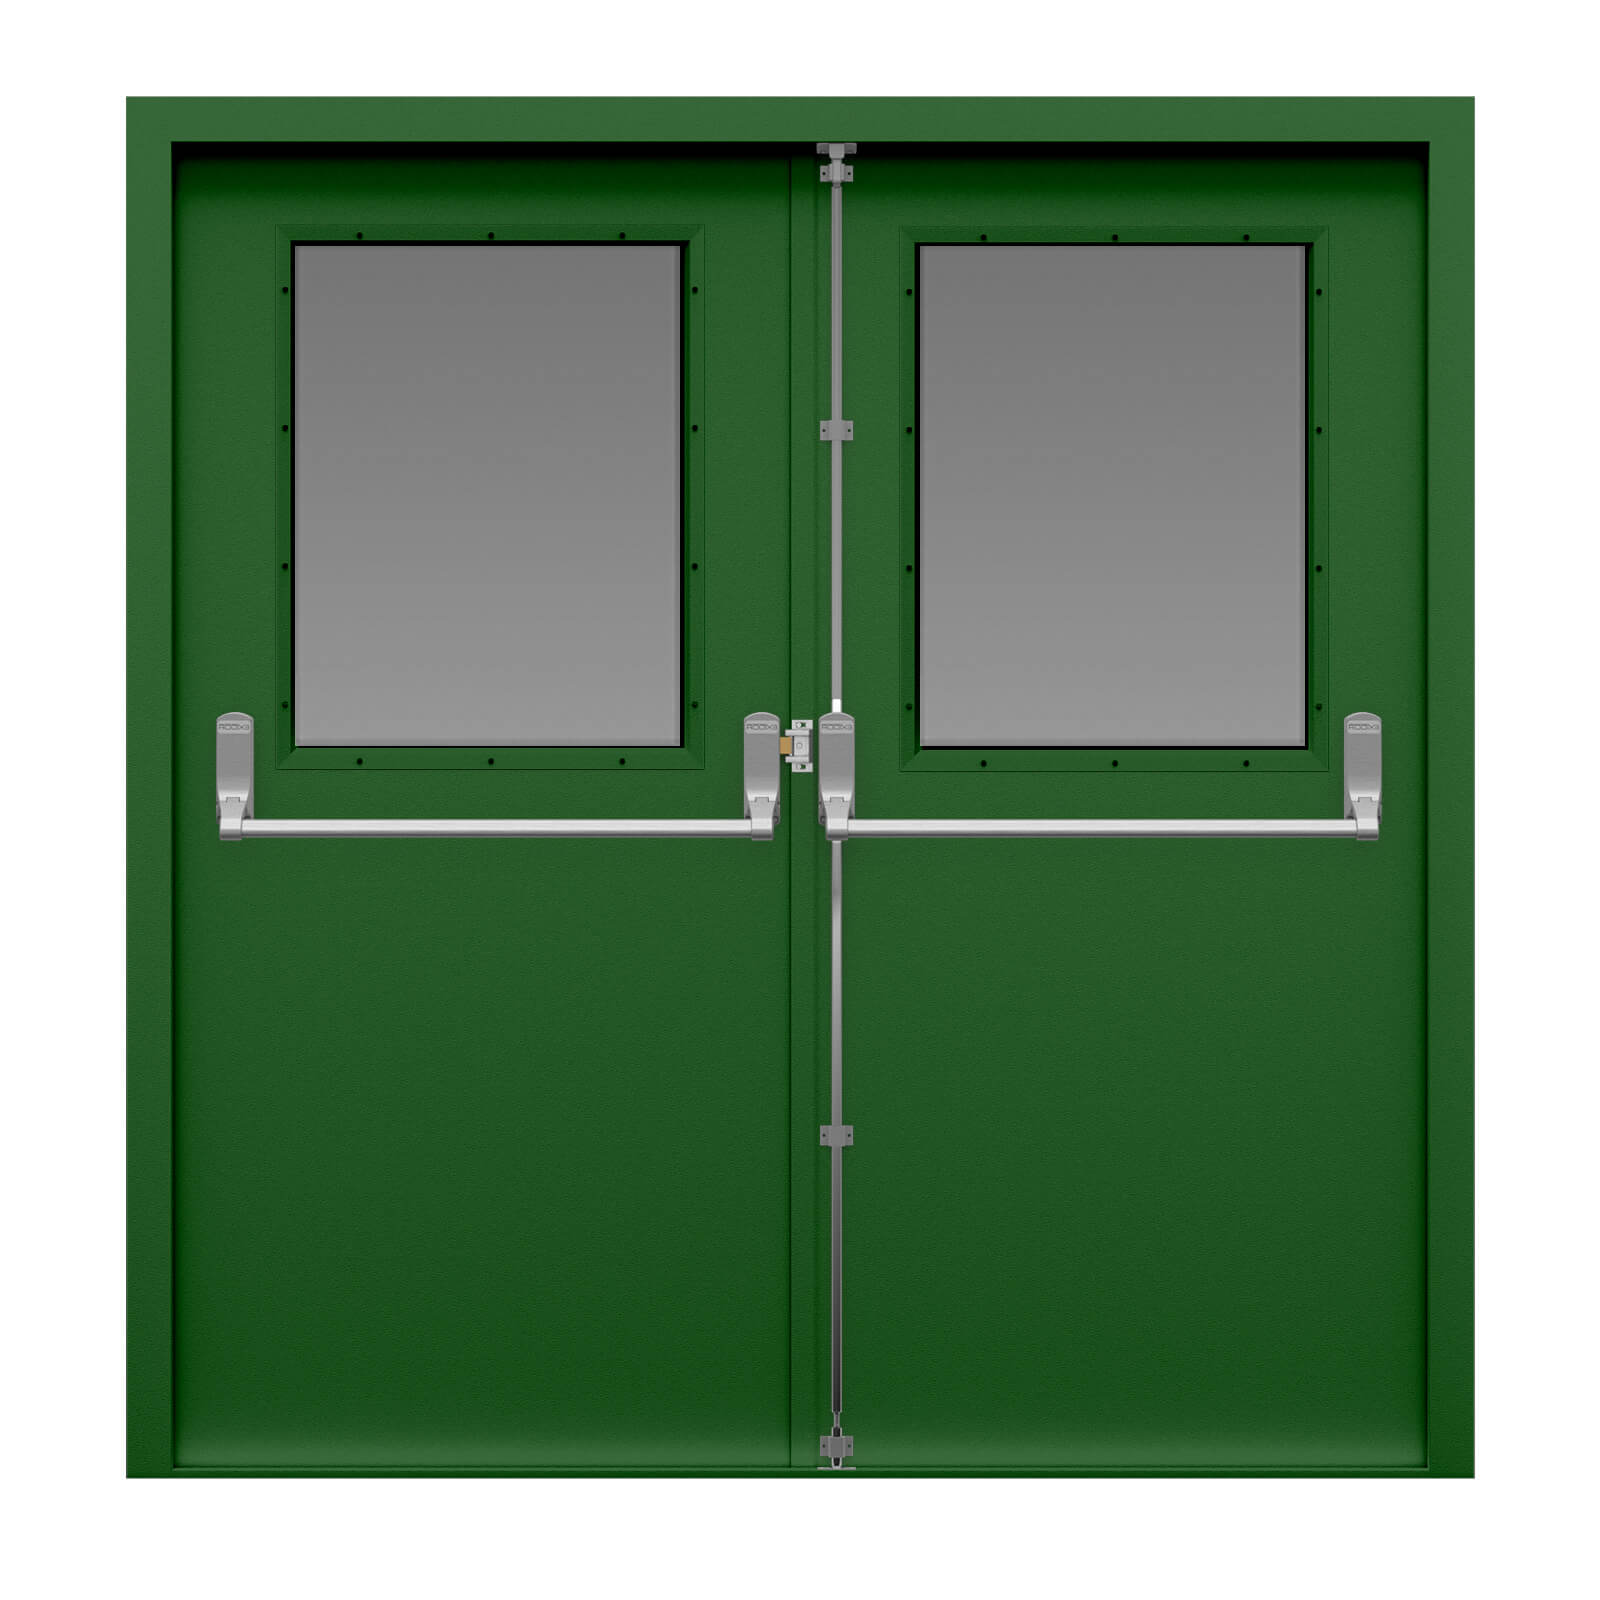 Glazed Double Fire Exit Door Latham S Steel Doors